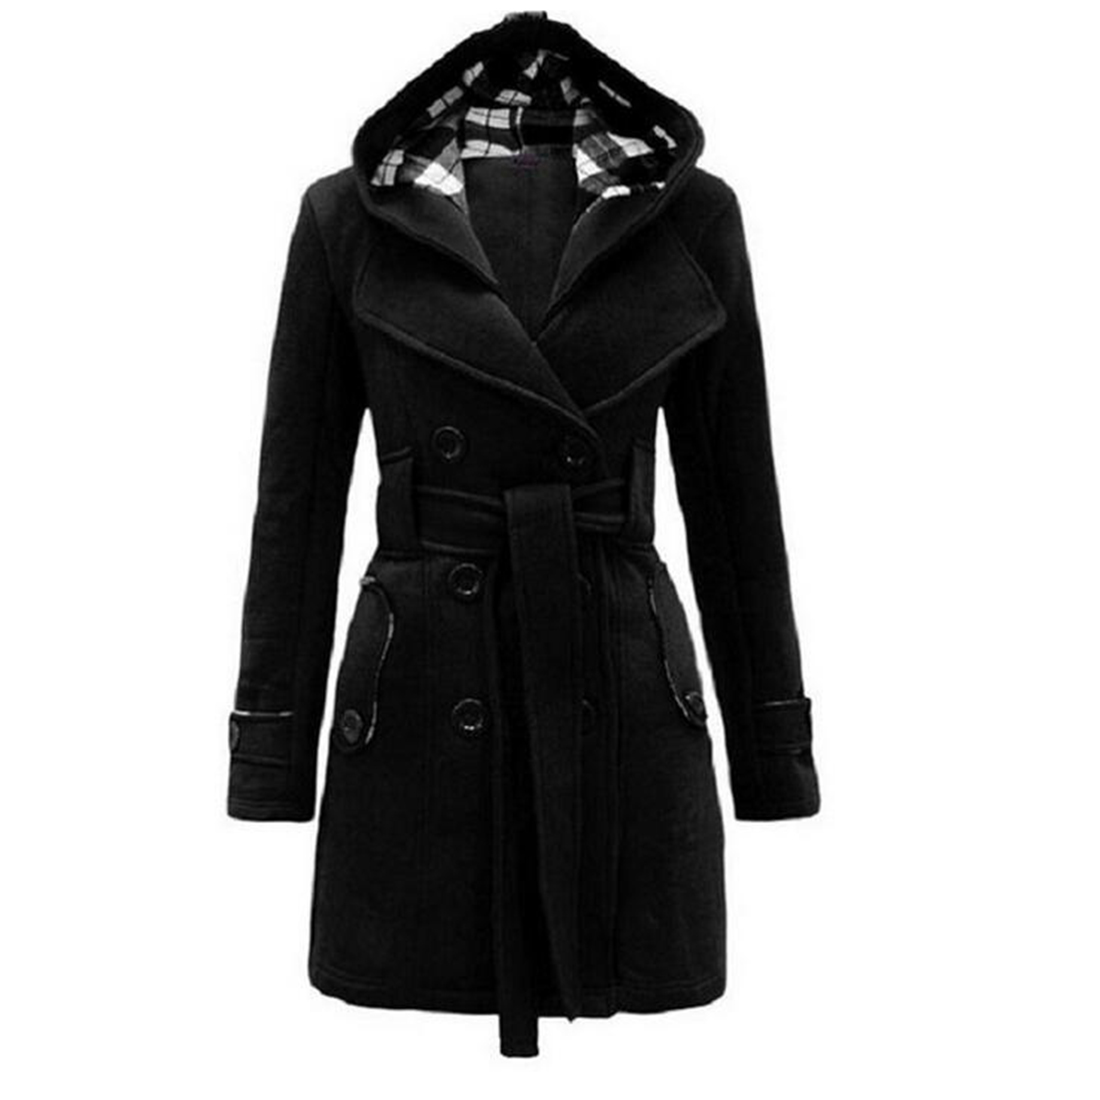 Long Sleeves Solid Women Hot 2016 New long Coat Hoodie Warm Winter Belt Design with a